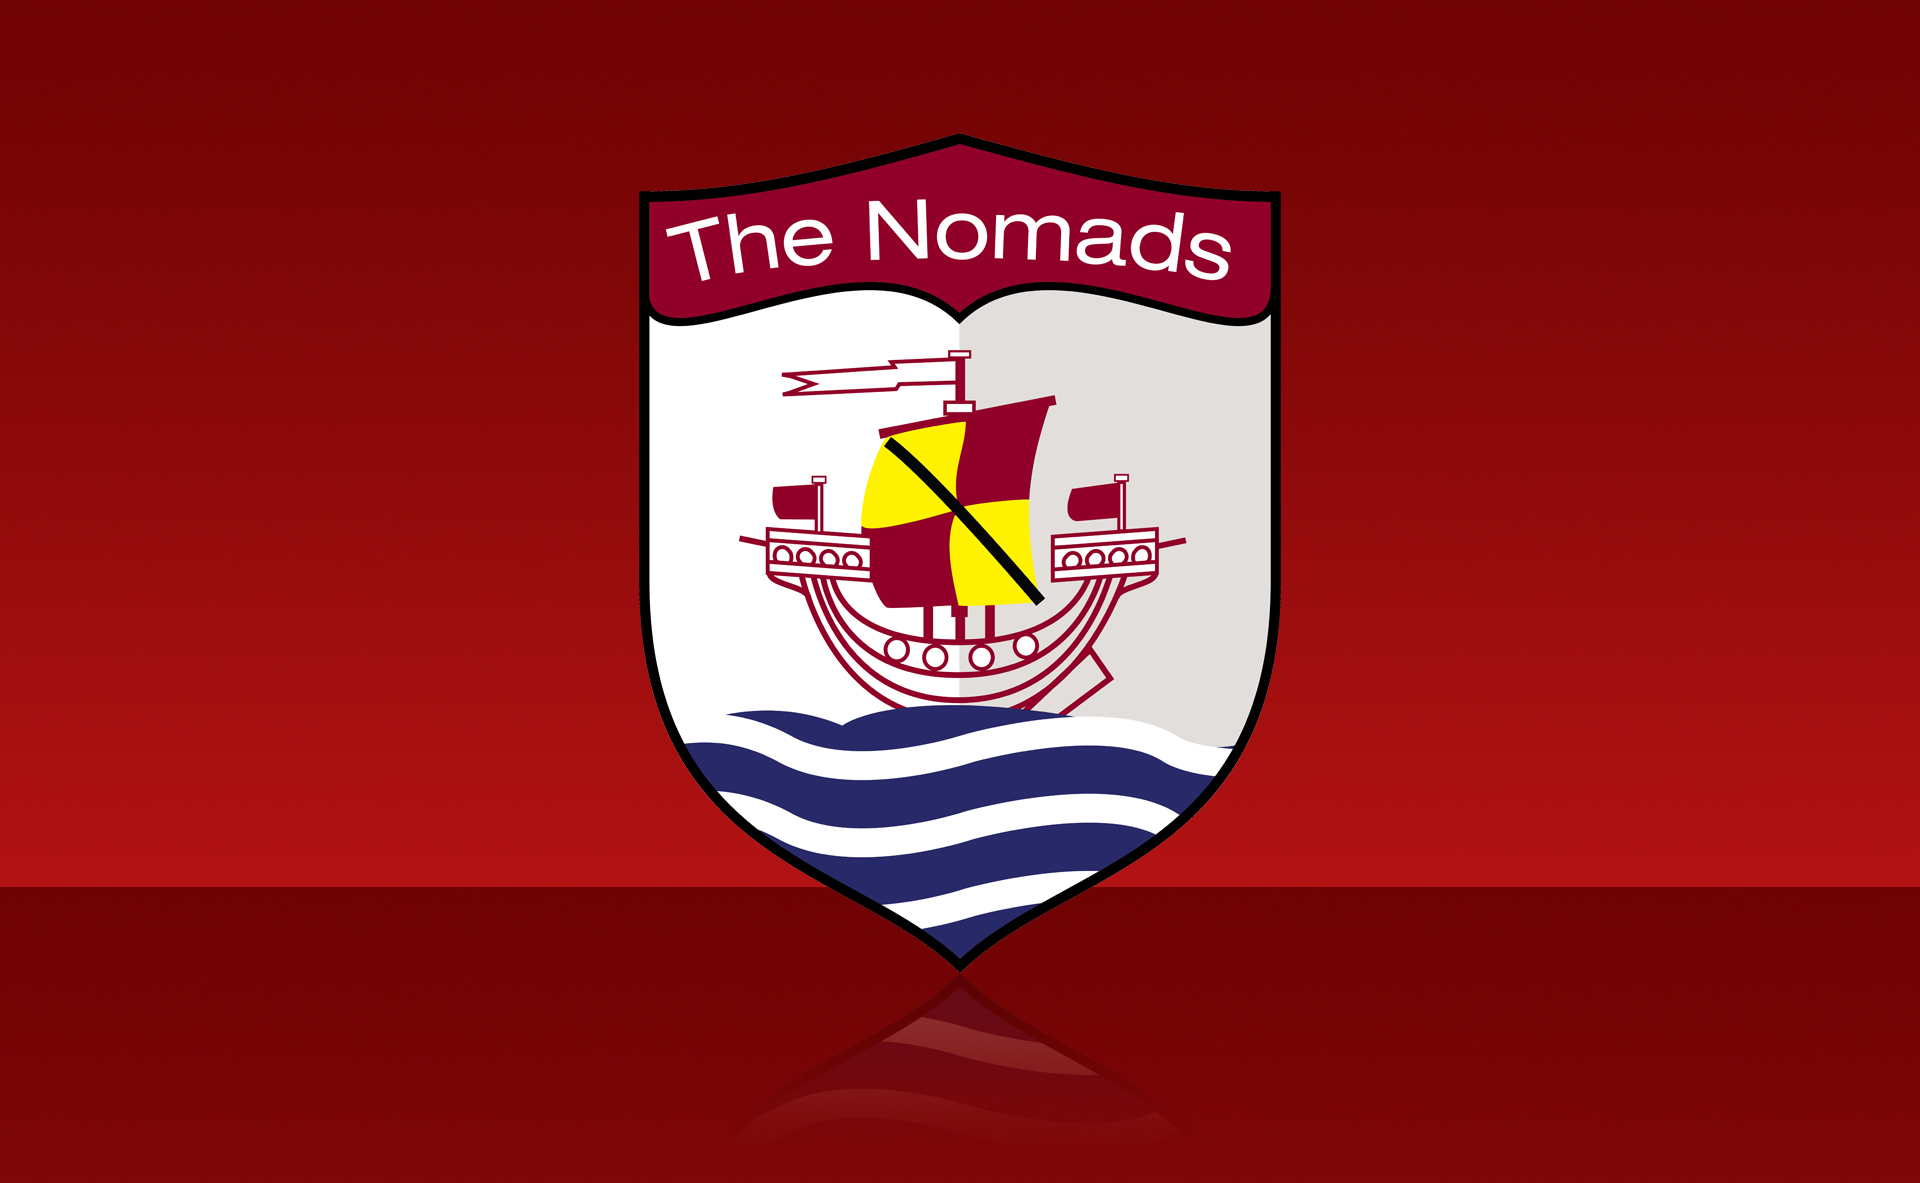 Nomads revert back to traditional name